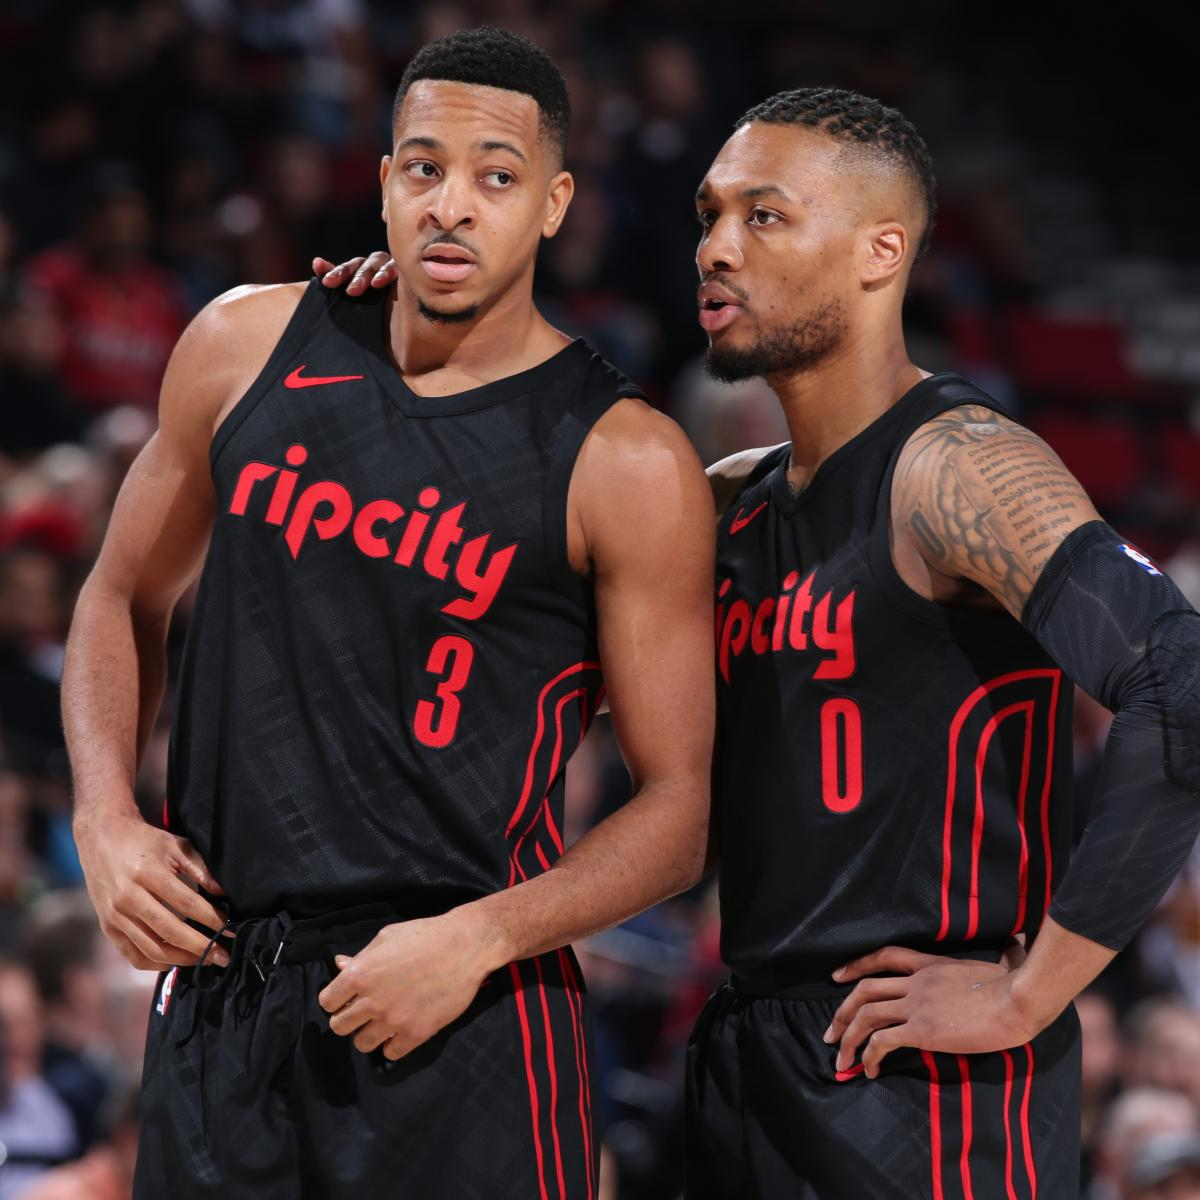 Portland Blazers Last Game: Trail Blazers 2018-19 Schedule: Top Games, Championship